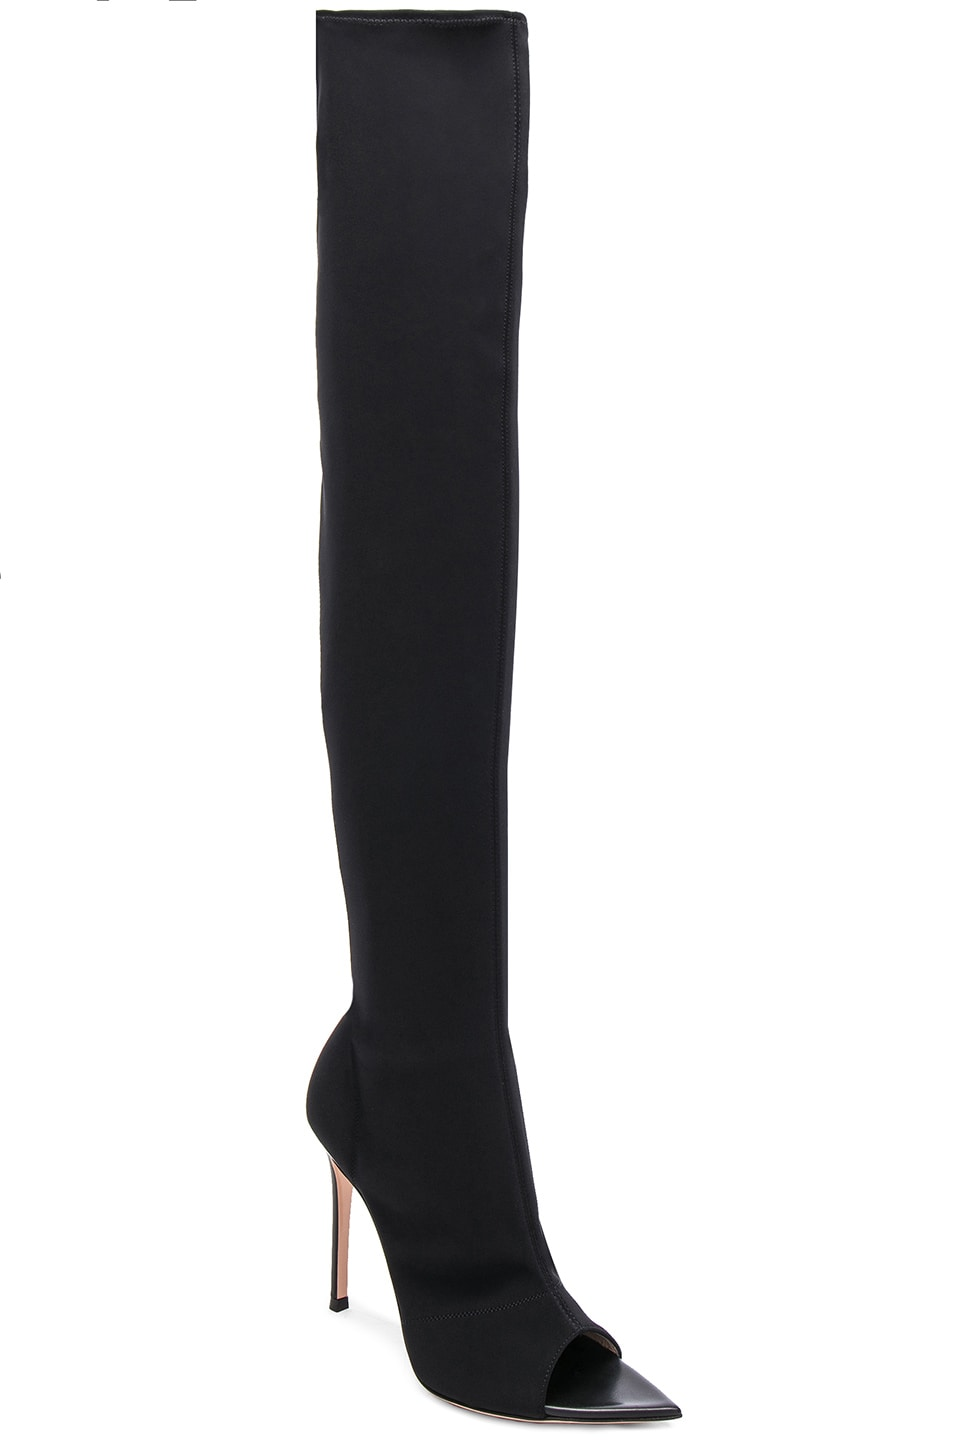 Image 2 of Gianvito Rossi Gotham Cuissard Peep Toe Thigh High Boots in Black & Black